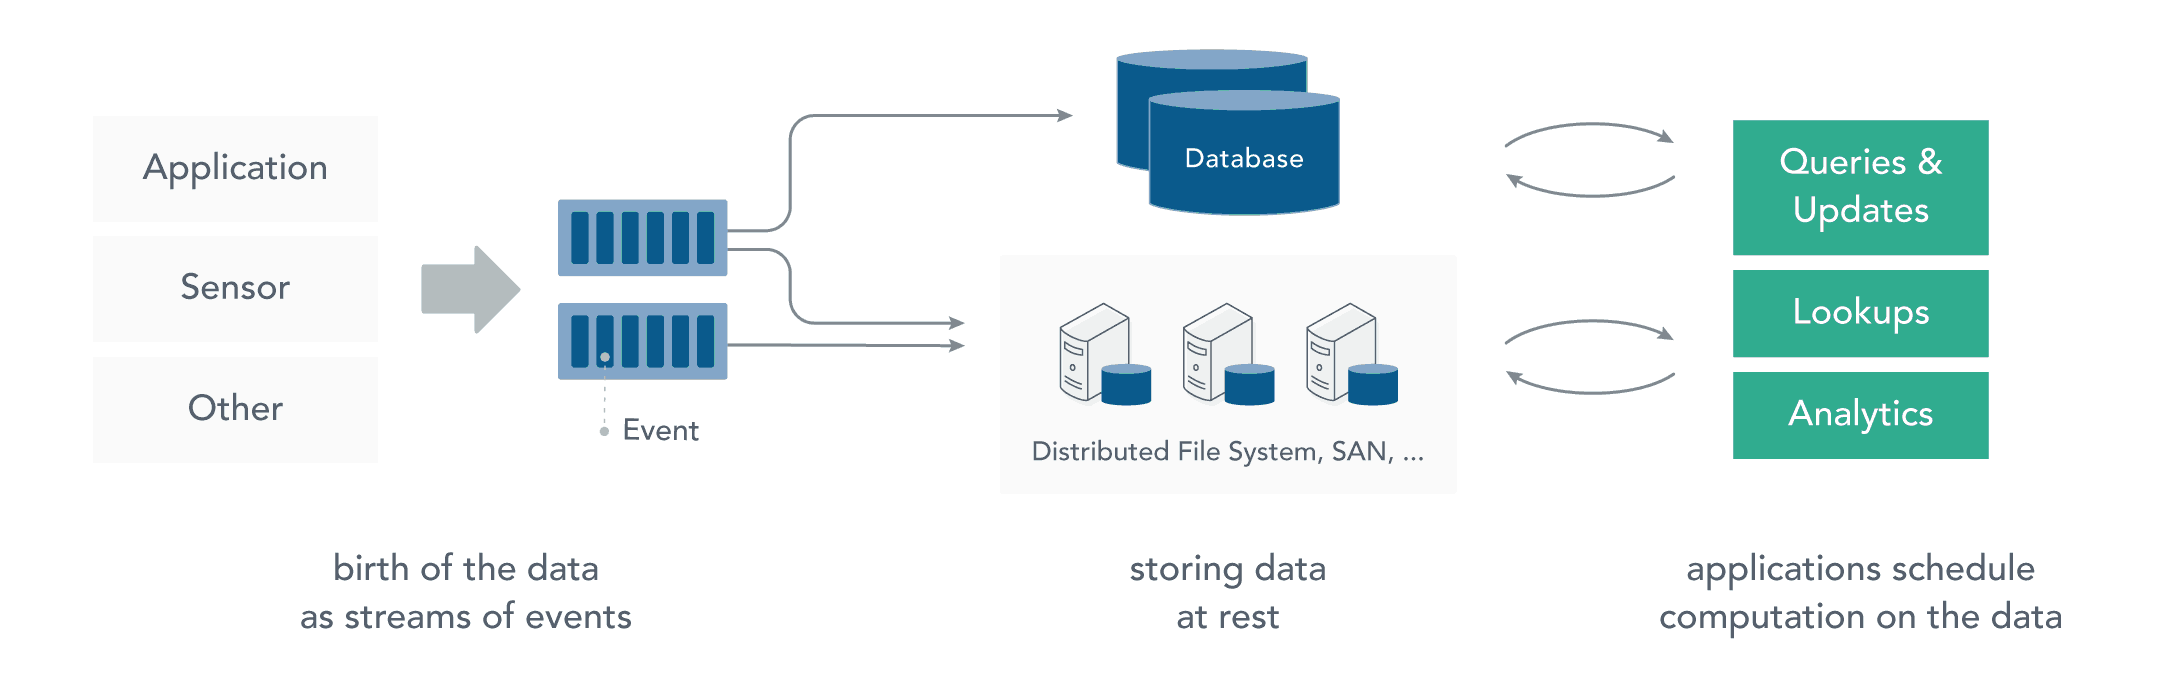 Data at rest infrastructure